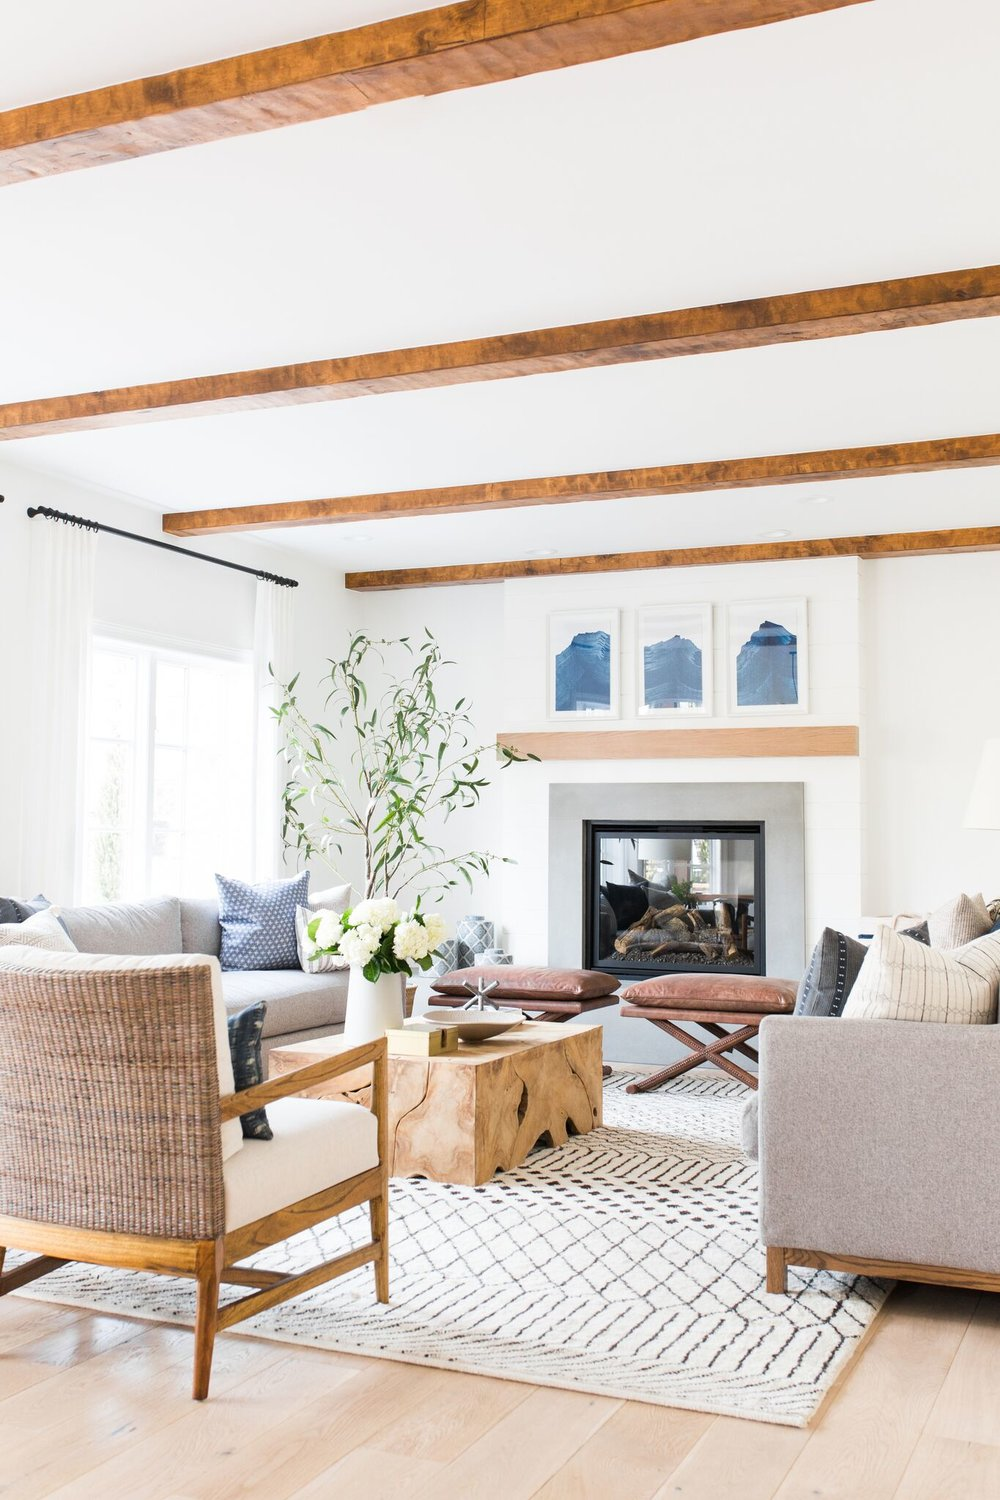 Shop the Look:  Budapest Rug in Natural ,  Clayton Long Sofa ,  Tory Coffee Table ,  Winslow Stools ,  Blue Jars ,  Newport Cross Pillow ,  Moody Mountain Artwork